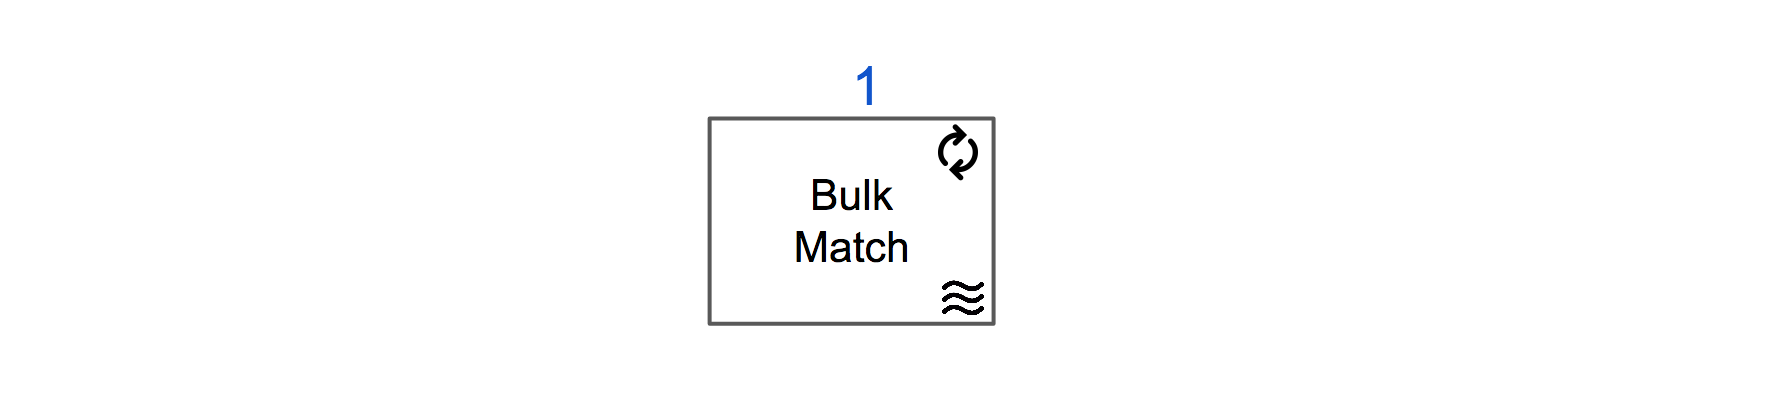 Synchronous operation to bulk match external or incoming records to a mastering project.